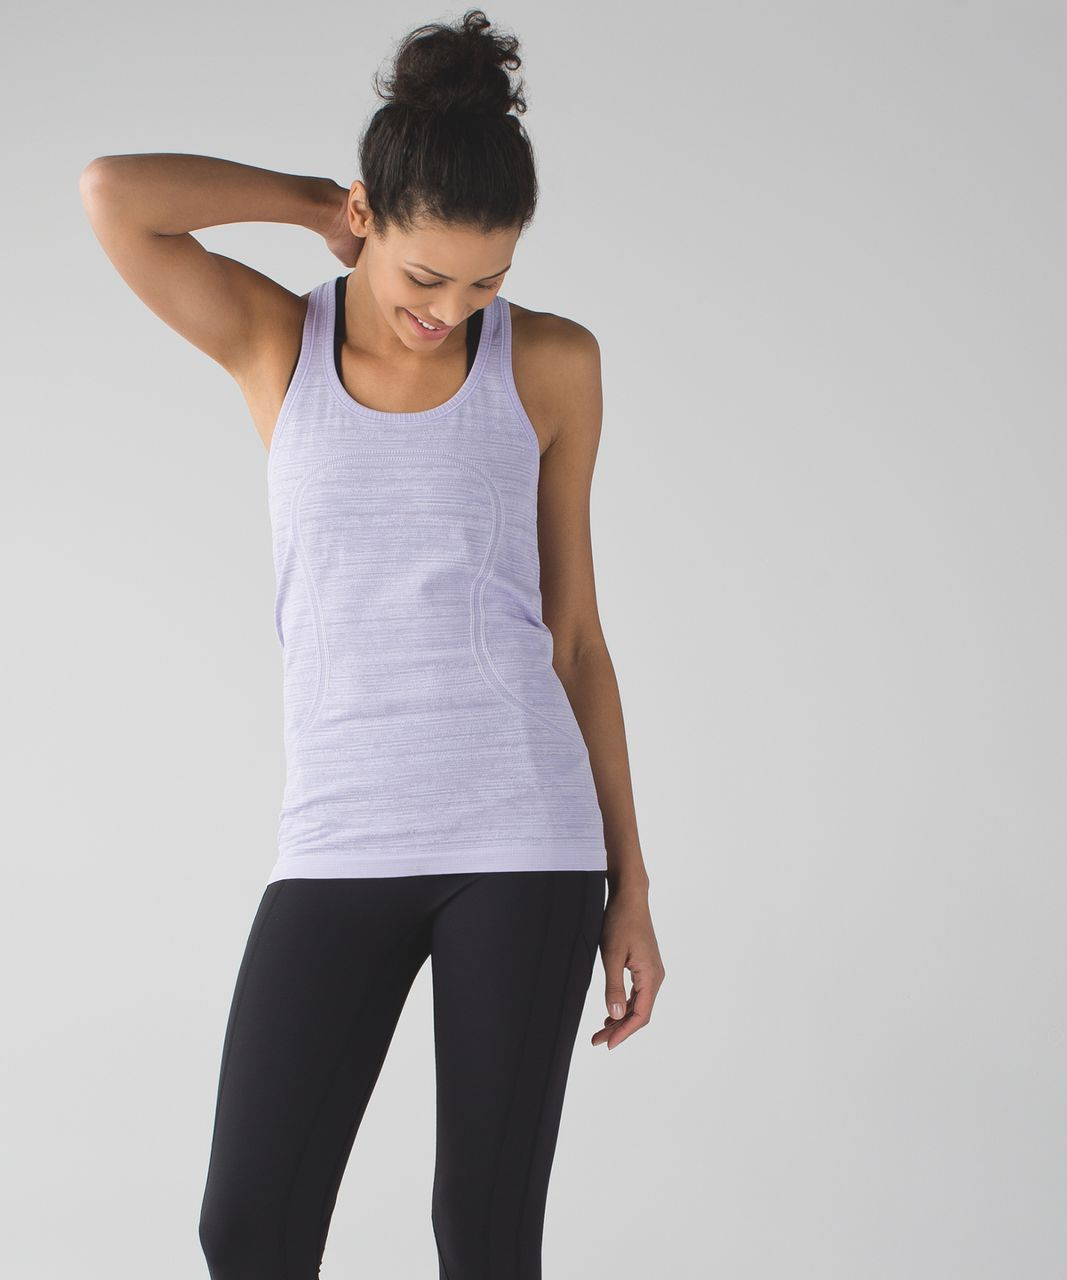 Lululemon Swiftly Tech Racerback - Heathered Lilac (Striped)